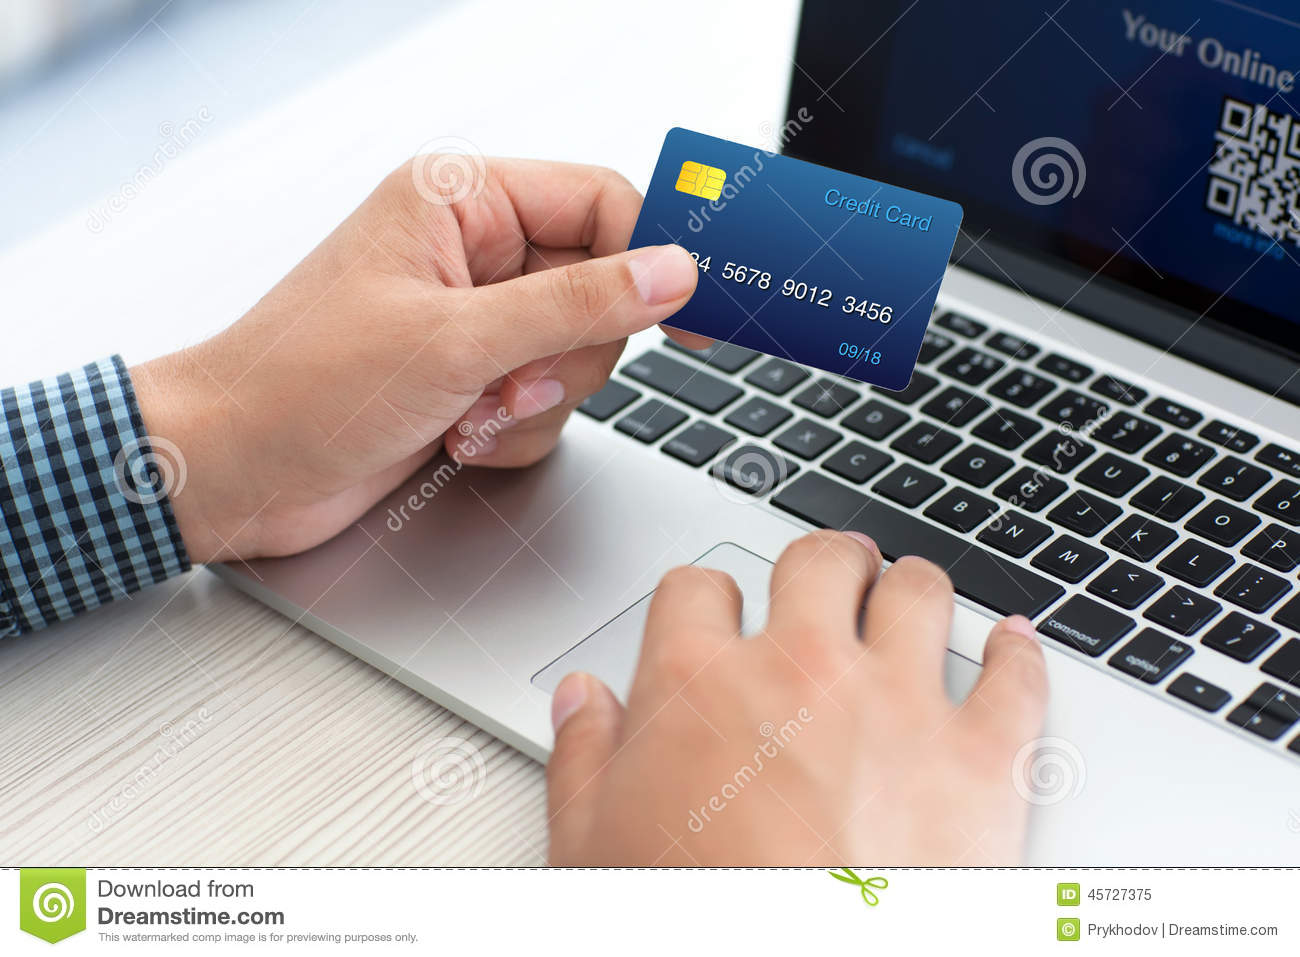 Online shopping credit